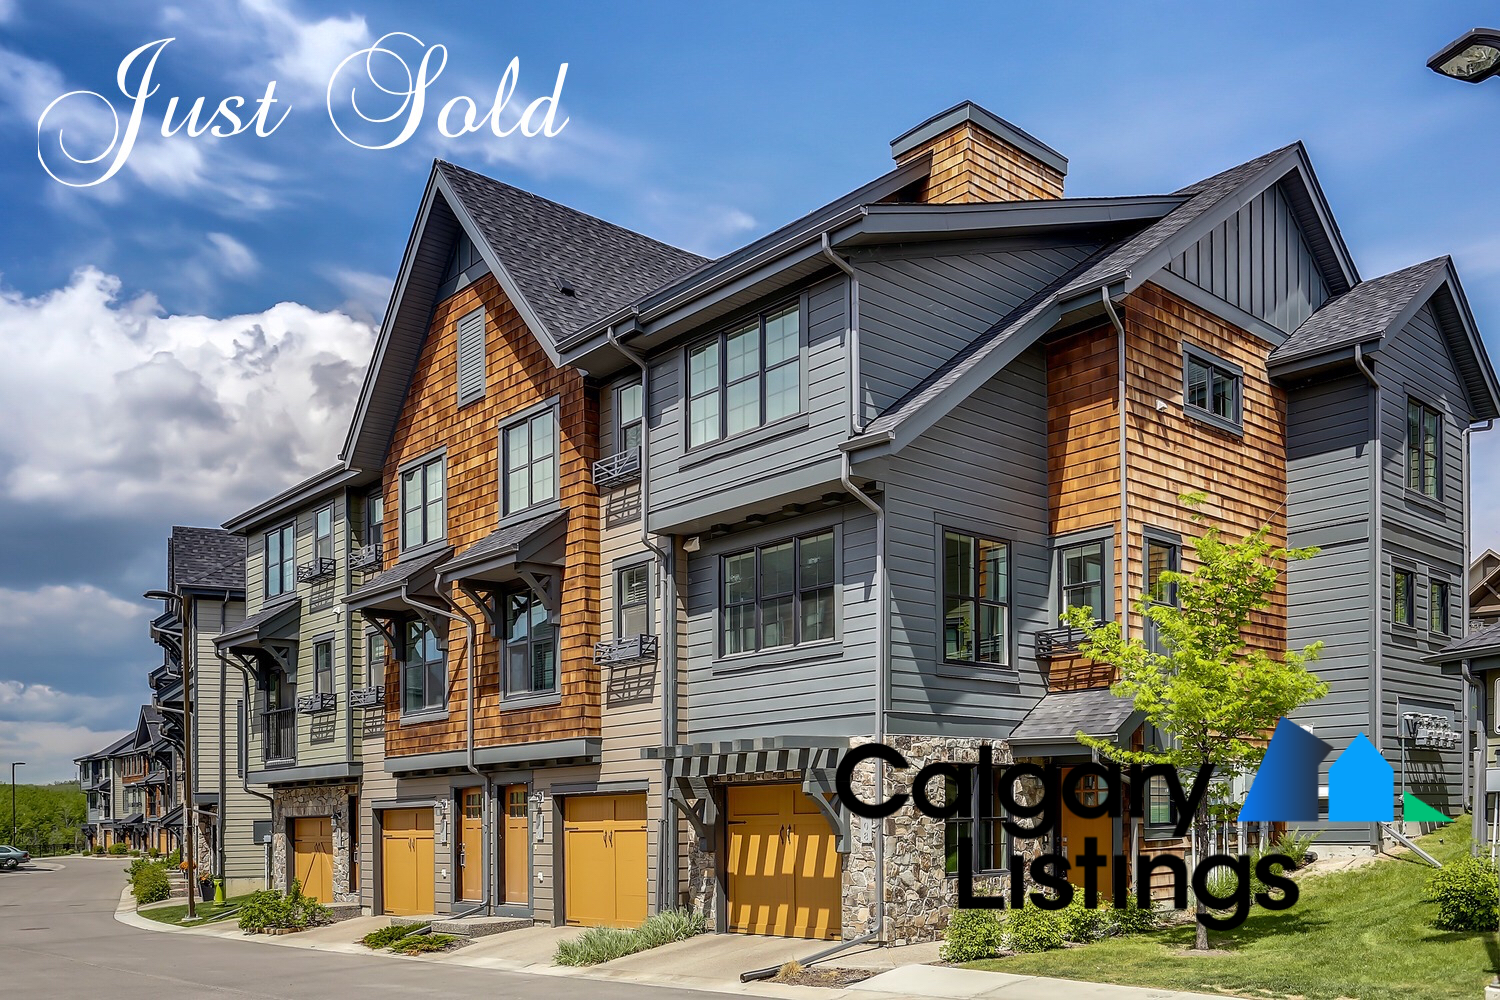 Just Sold - Ascot - Aspen Woods Enclave